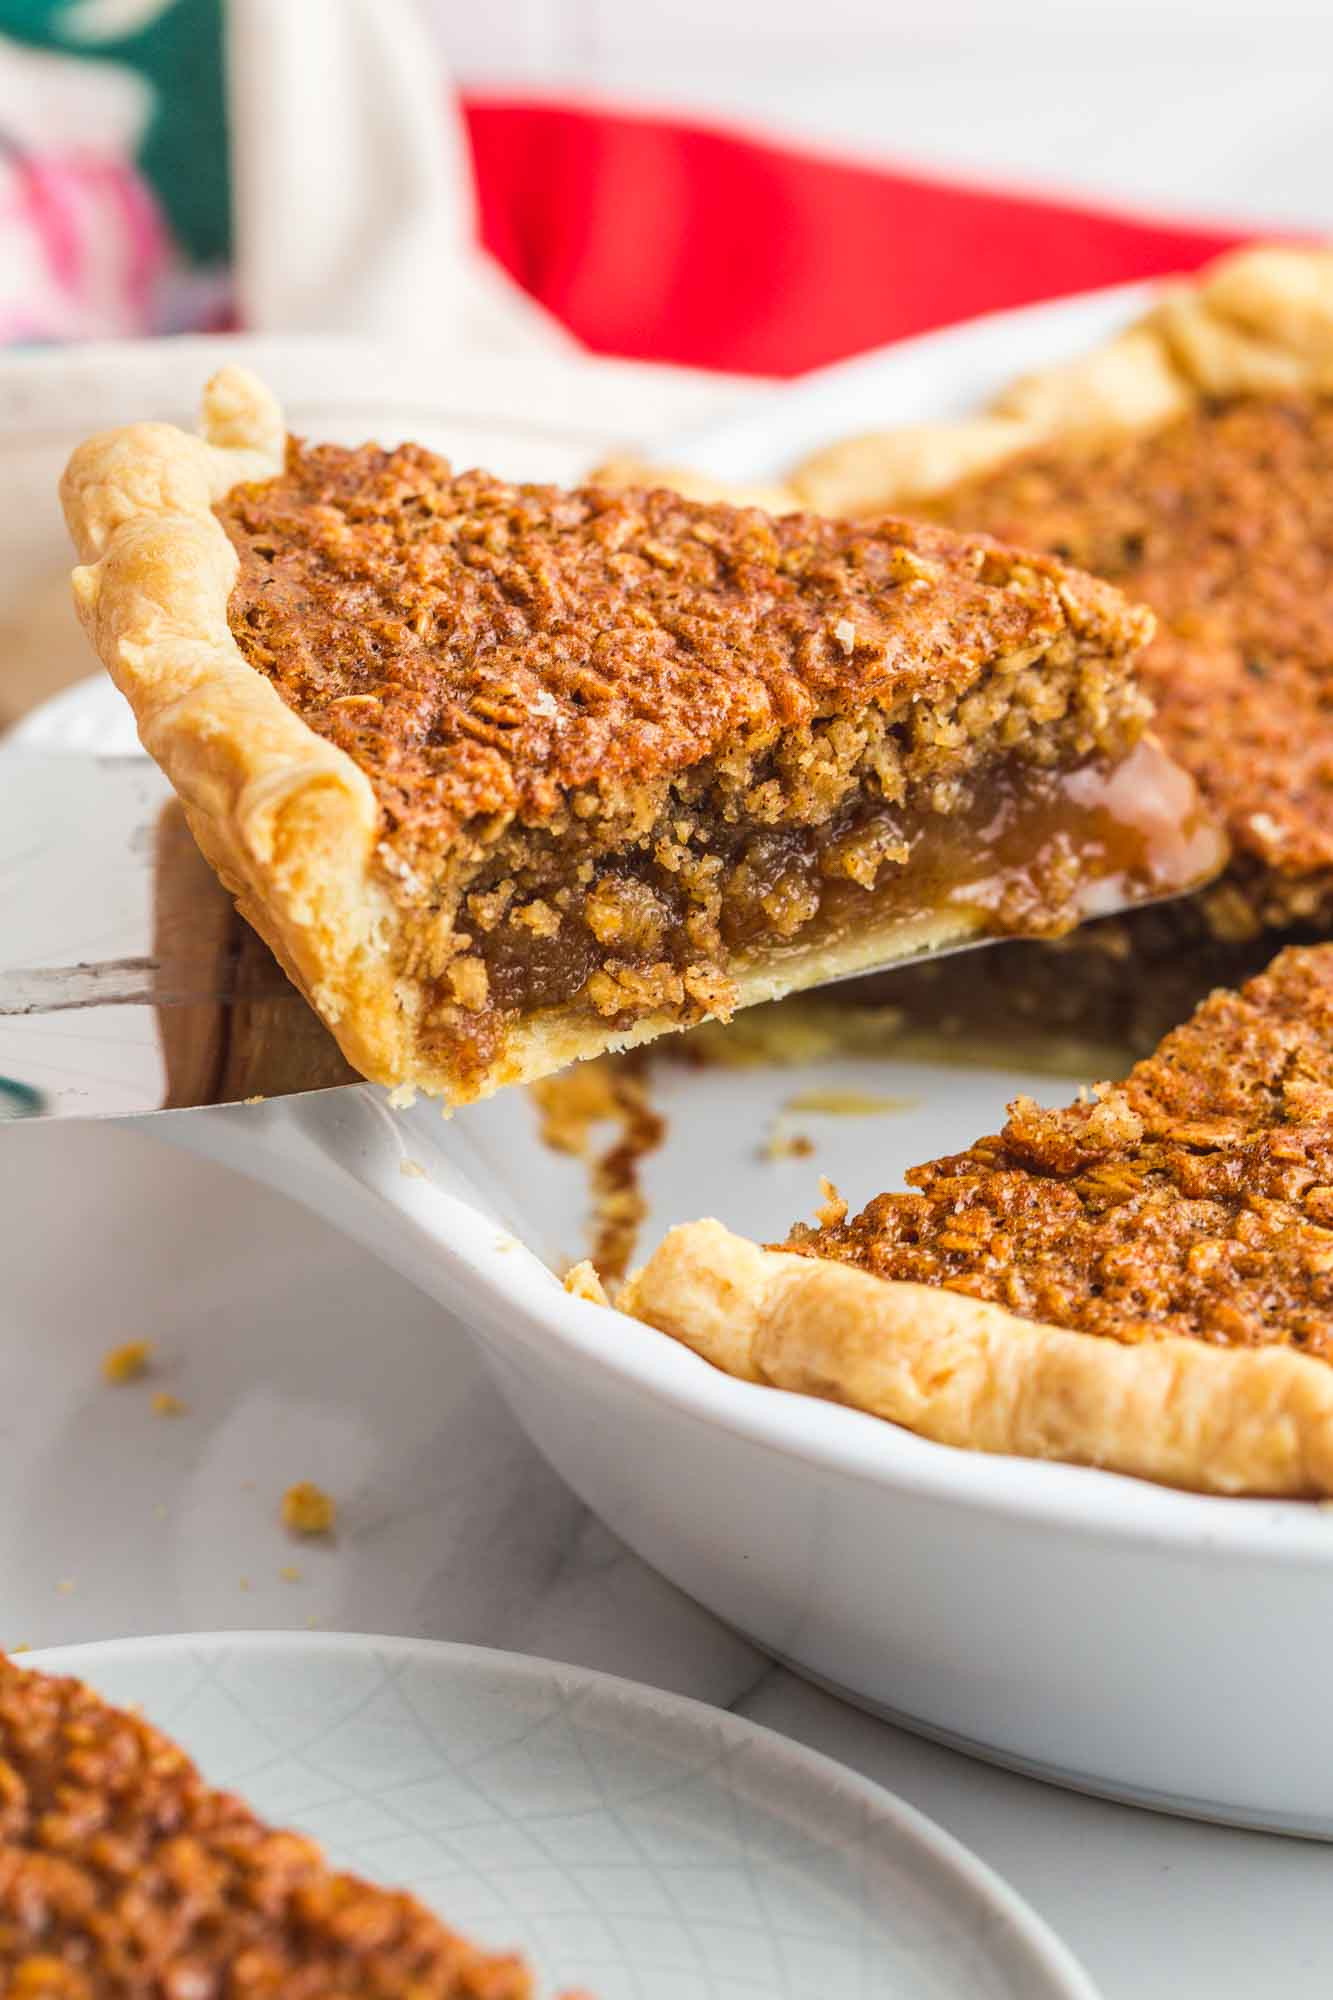 Taking a slice of oatmeal pie from a whole pie